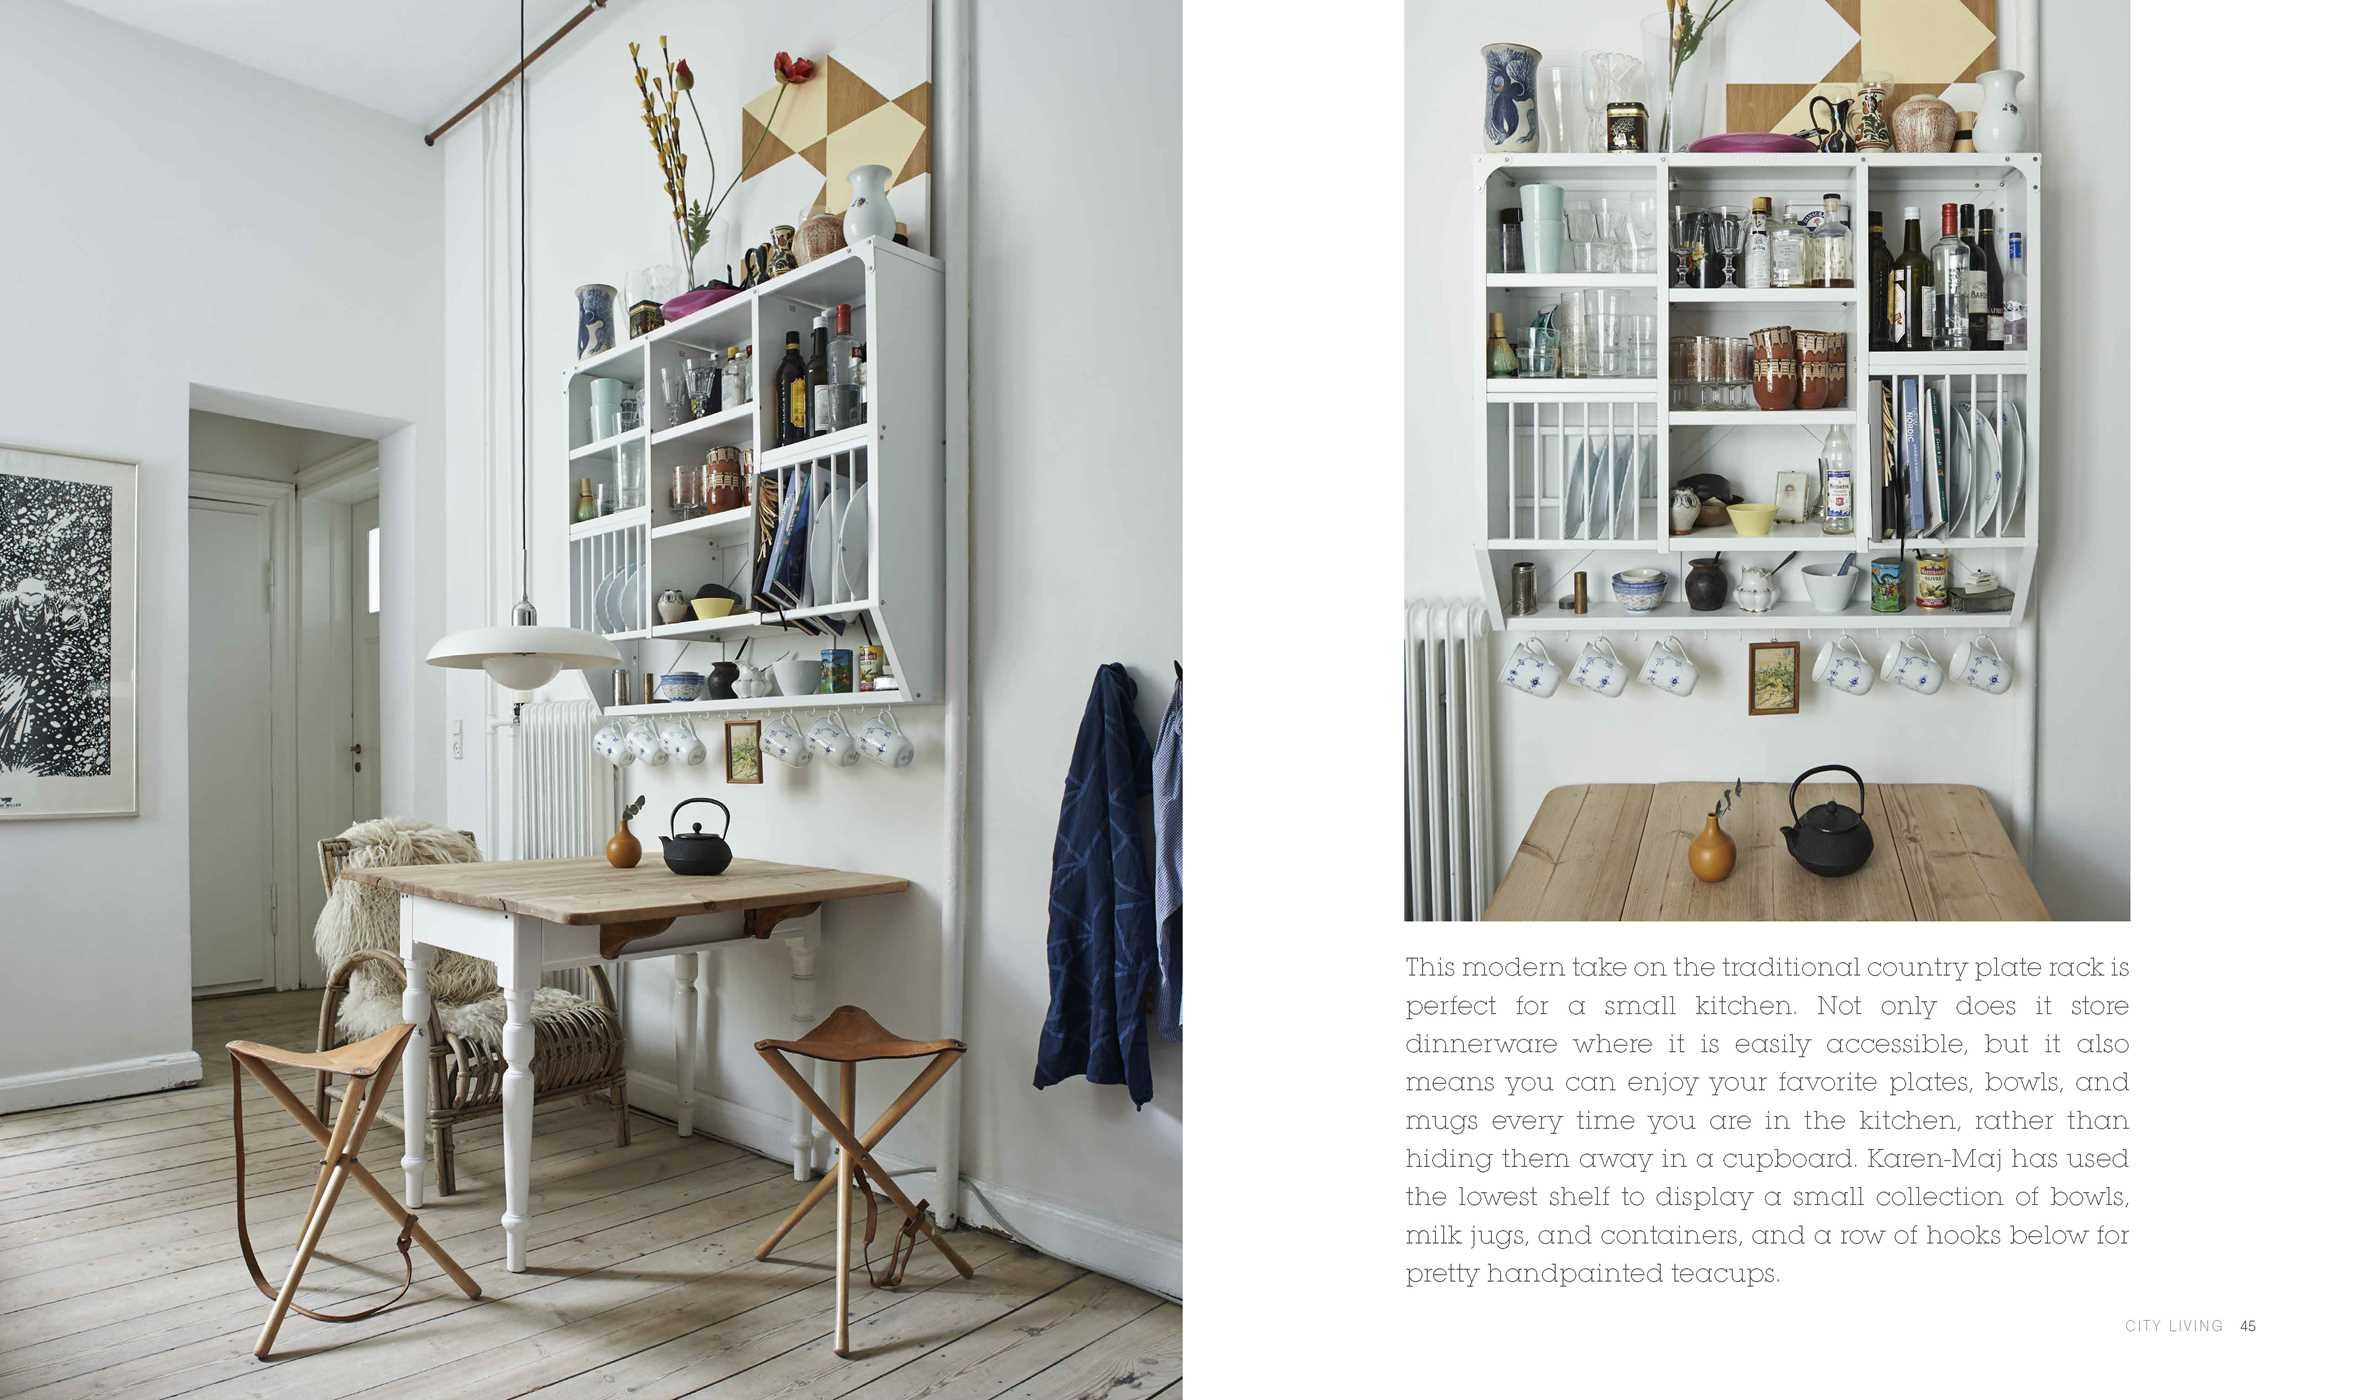 Scandinavian Interior Design Books 5 The Scandinavian Home Interiors Inspired By Light By